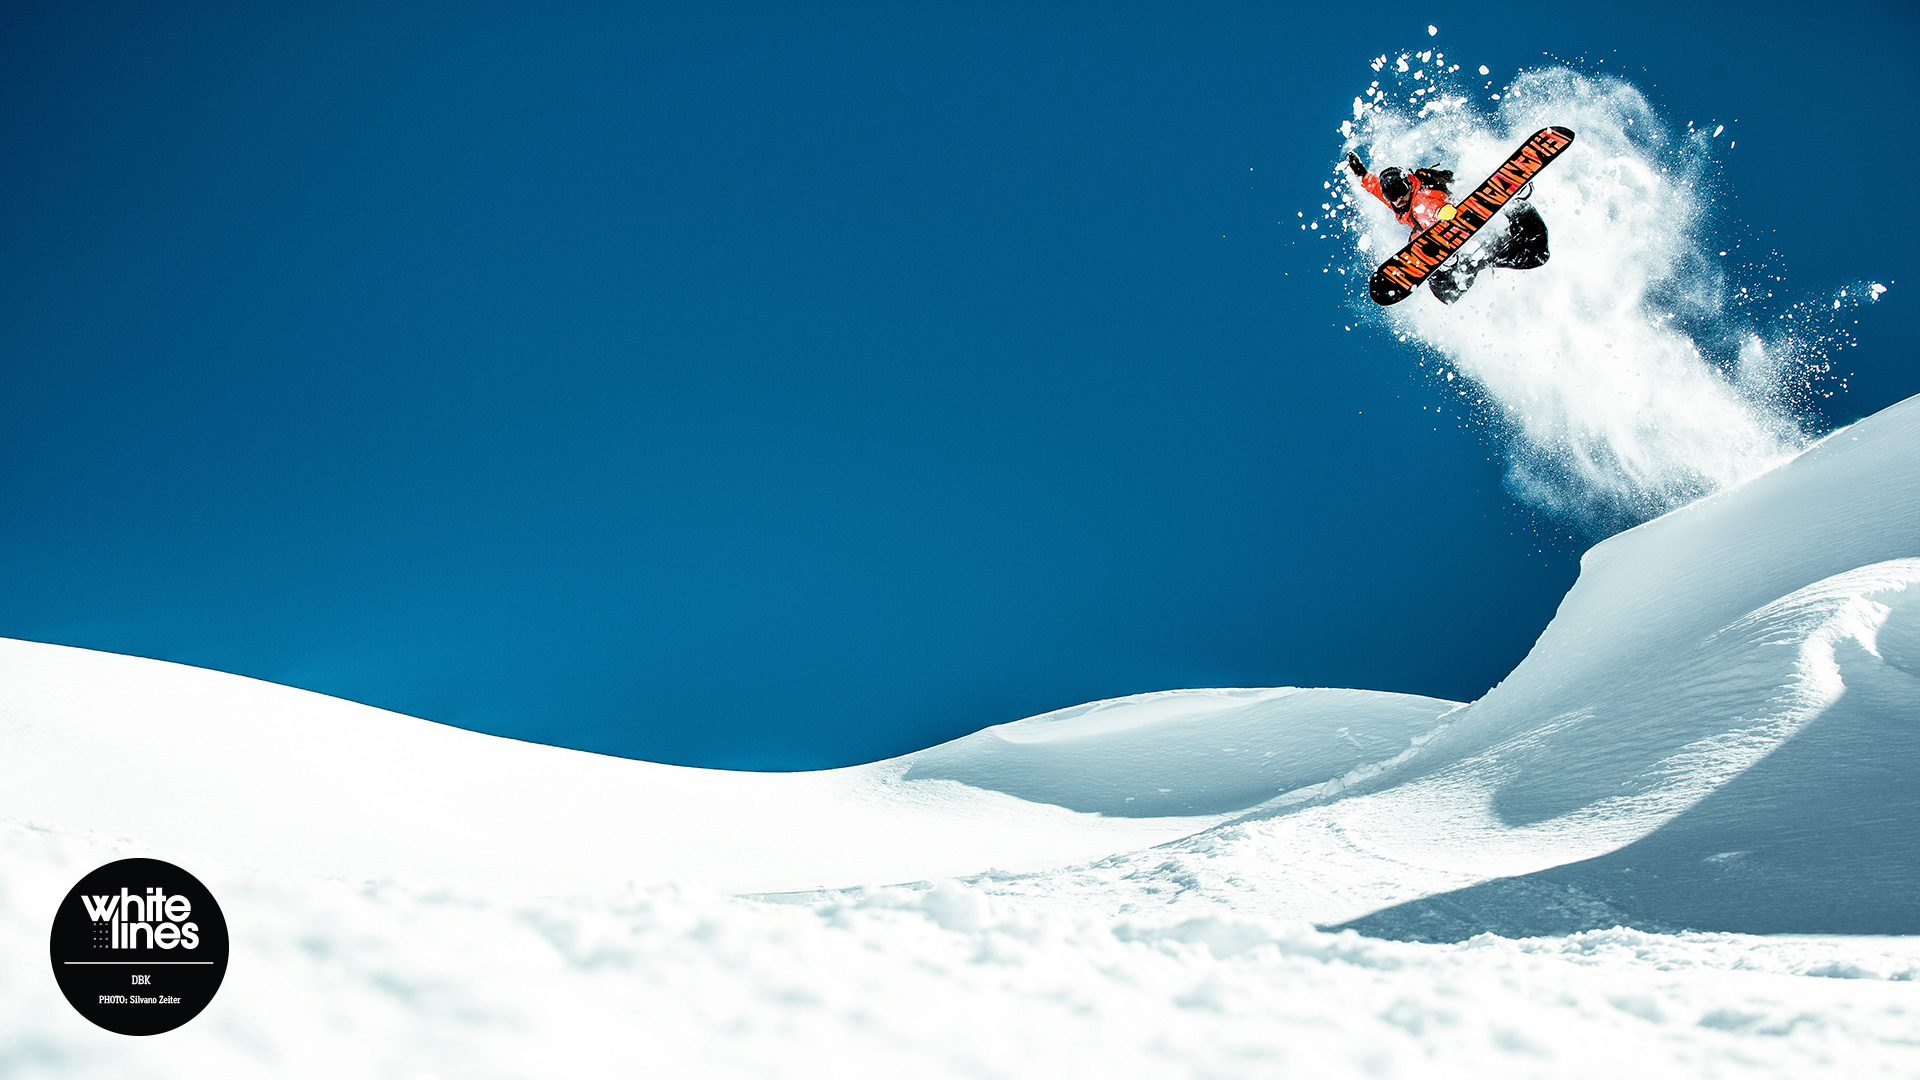 1920x1080 - Snowboarding Wallpapers 12